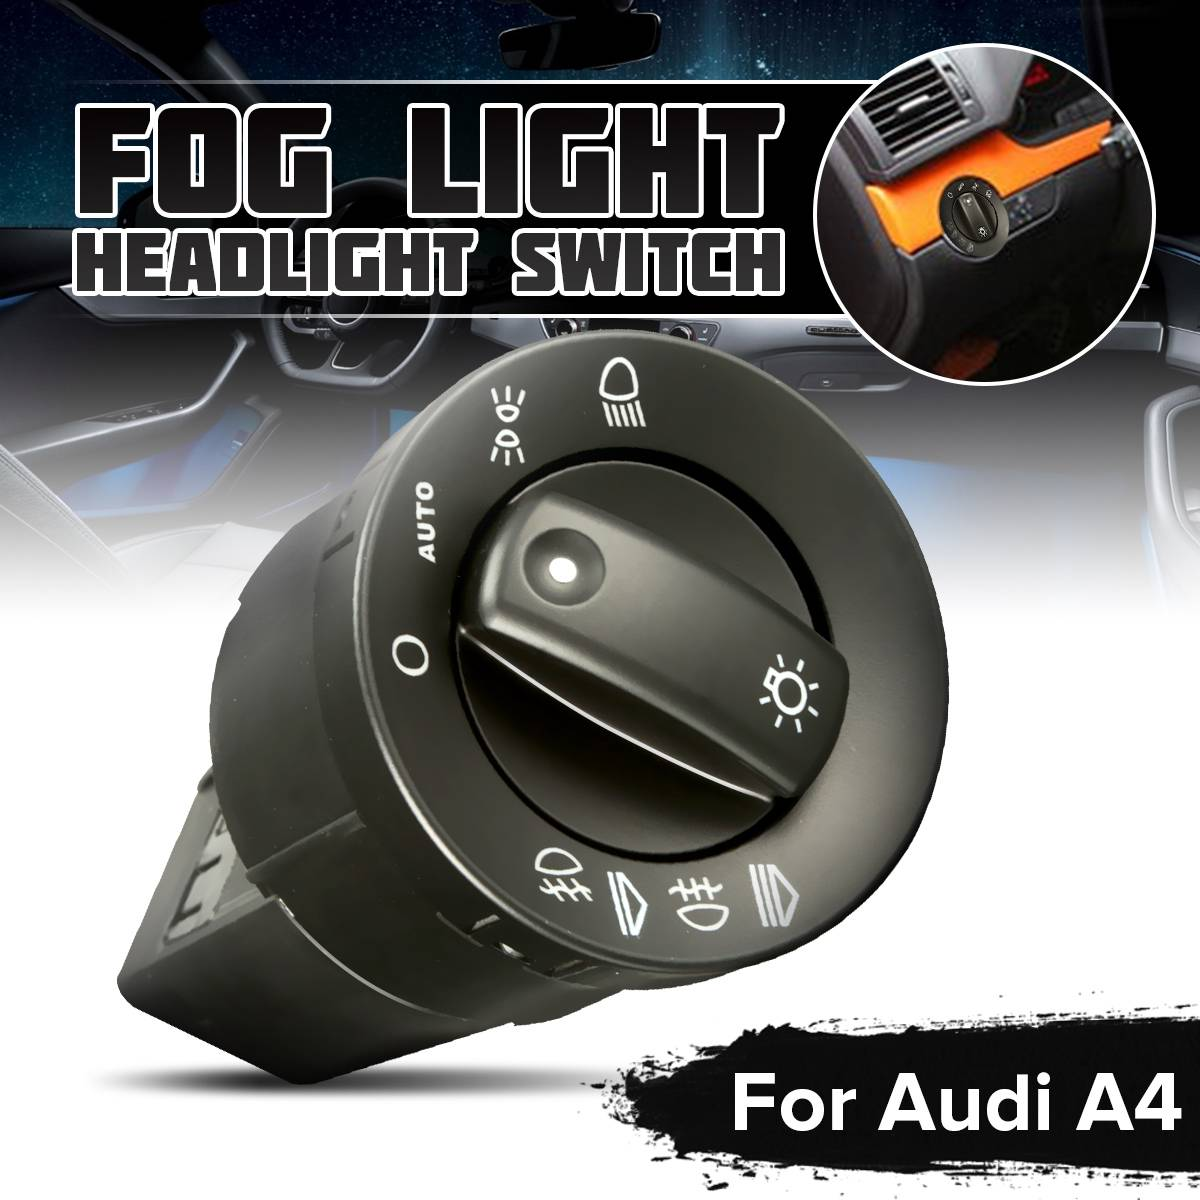 New Front Rear Fog Light Headlight Switch For Audi A4 8E B6 B7 8E0941531B AUTO Switches Replacement Parts